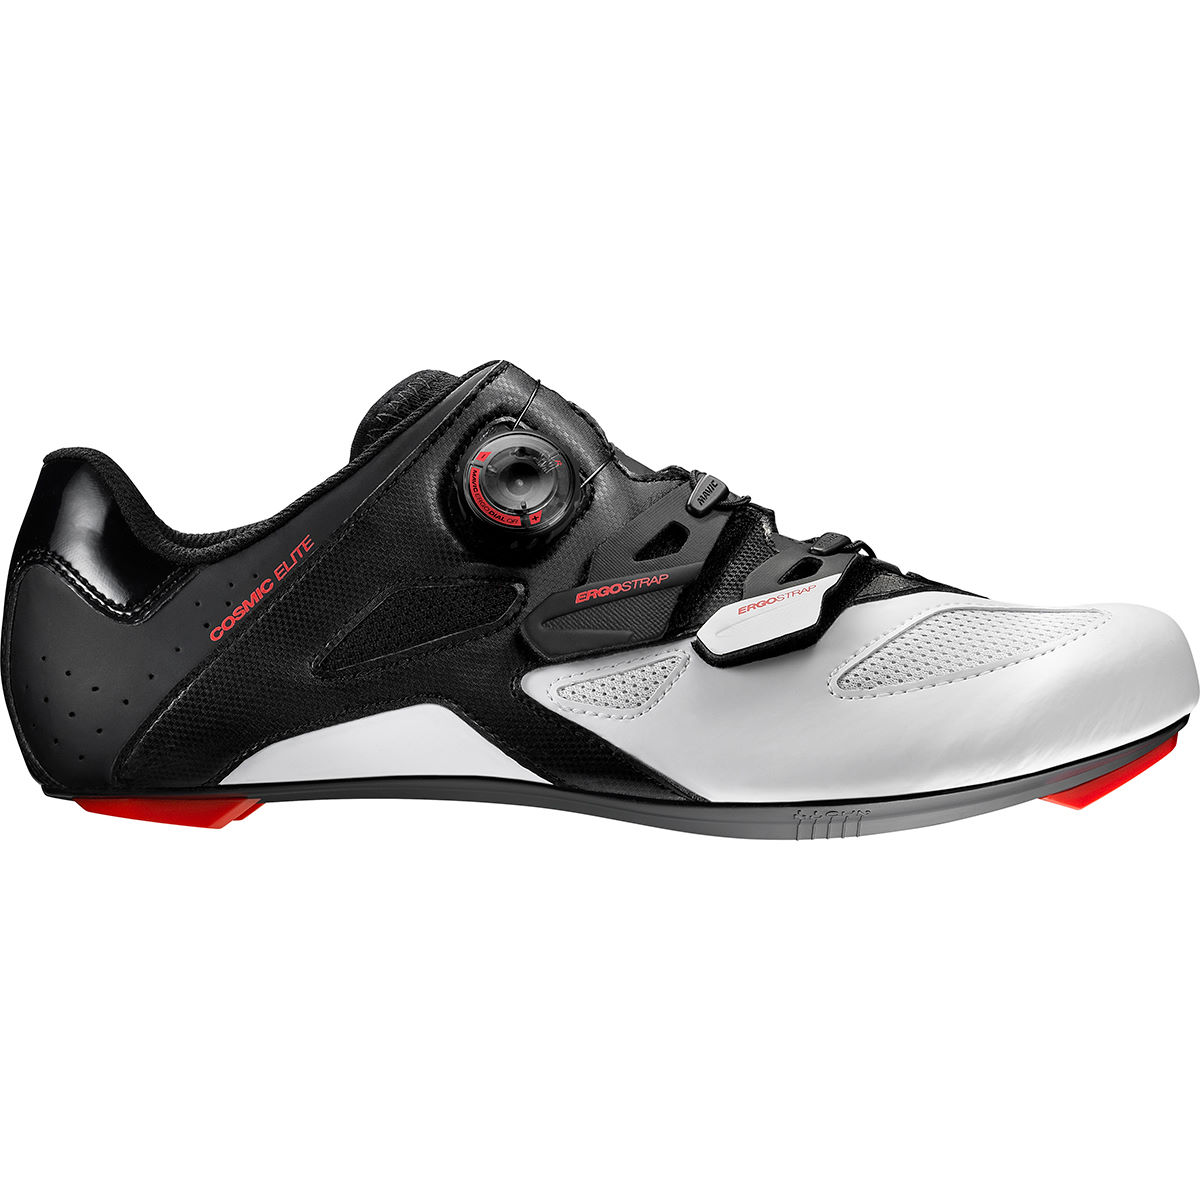 Mavic Cosmic Elite SPD-SL Road Shoes - Zapatillas para bicicletas de carretera